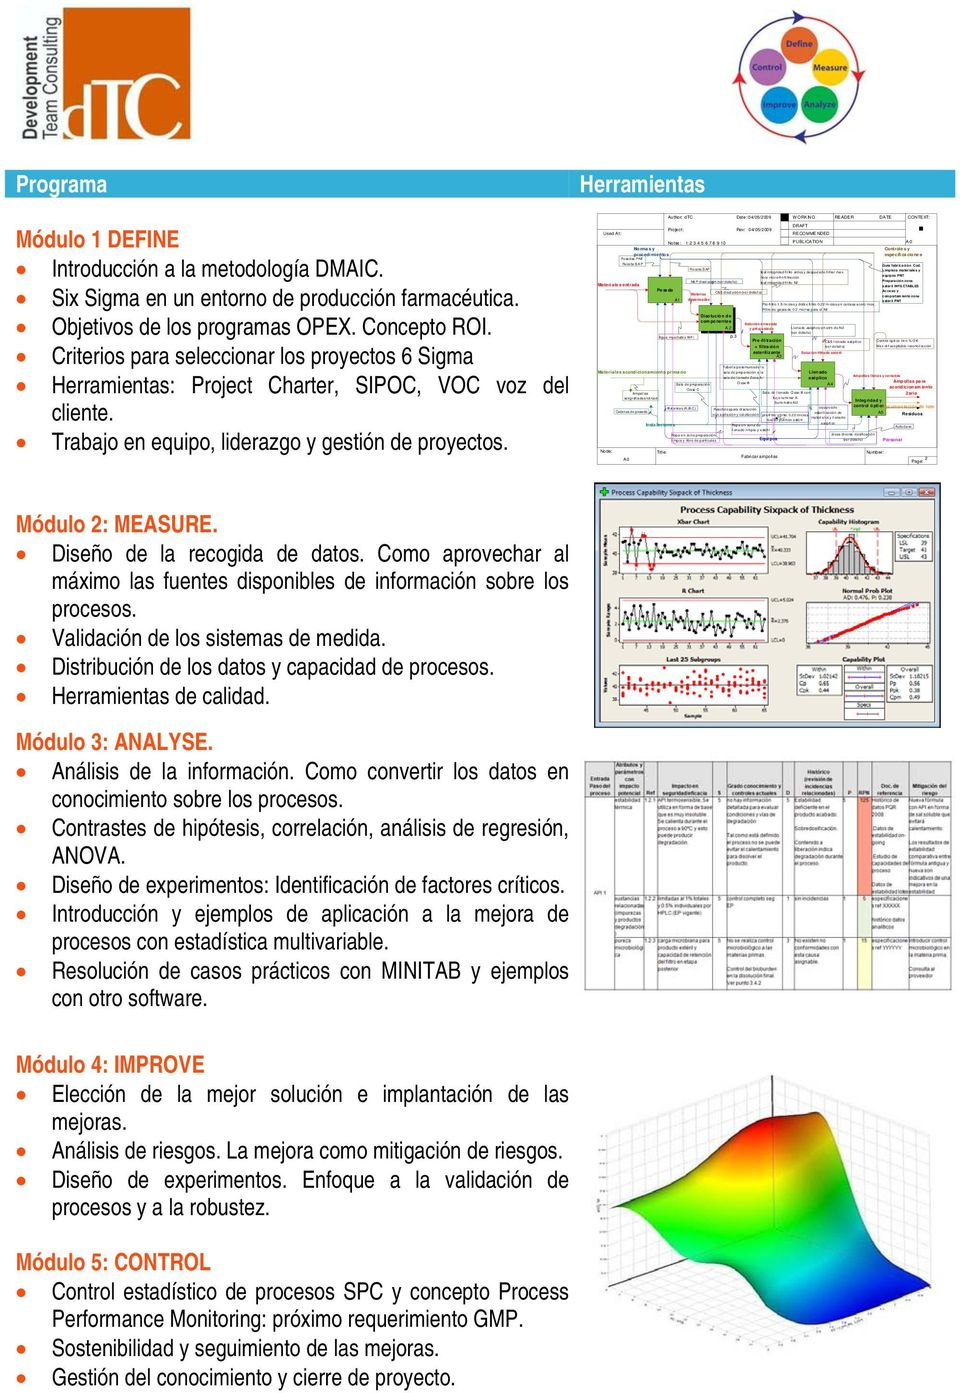 Herramientas Author: dtc Date: 04/05/2009 WORKING READER DATE CONTEXT: DRAFT Project: Rev: 04/05/2009 Used At: RE COMME NDED Notes: 1 2 3 4 5 6 7 8 9 10 PUBLICATION A-0 Norma s y Controle s y